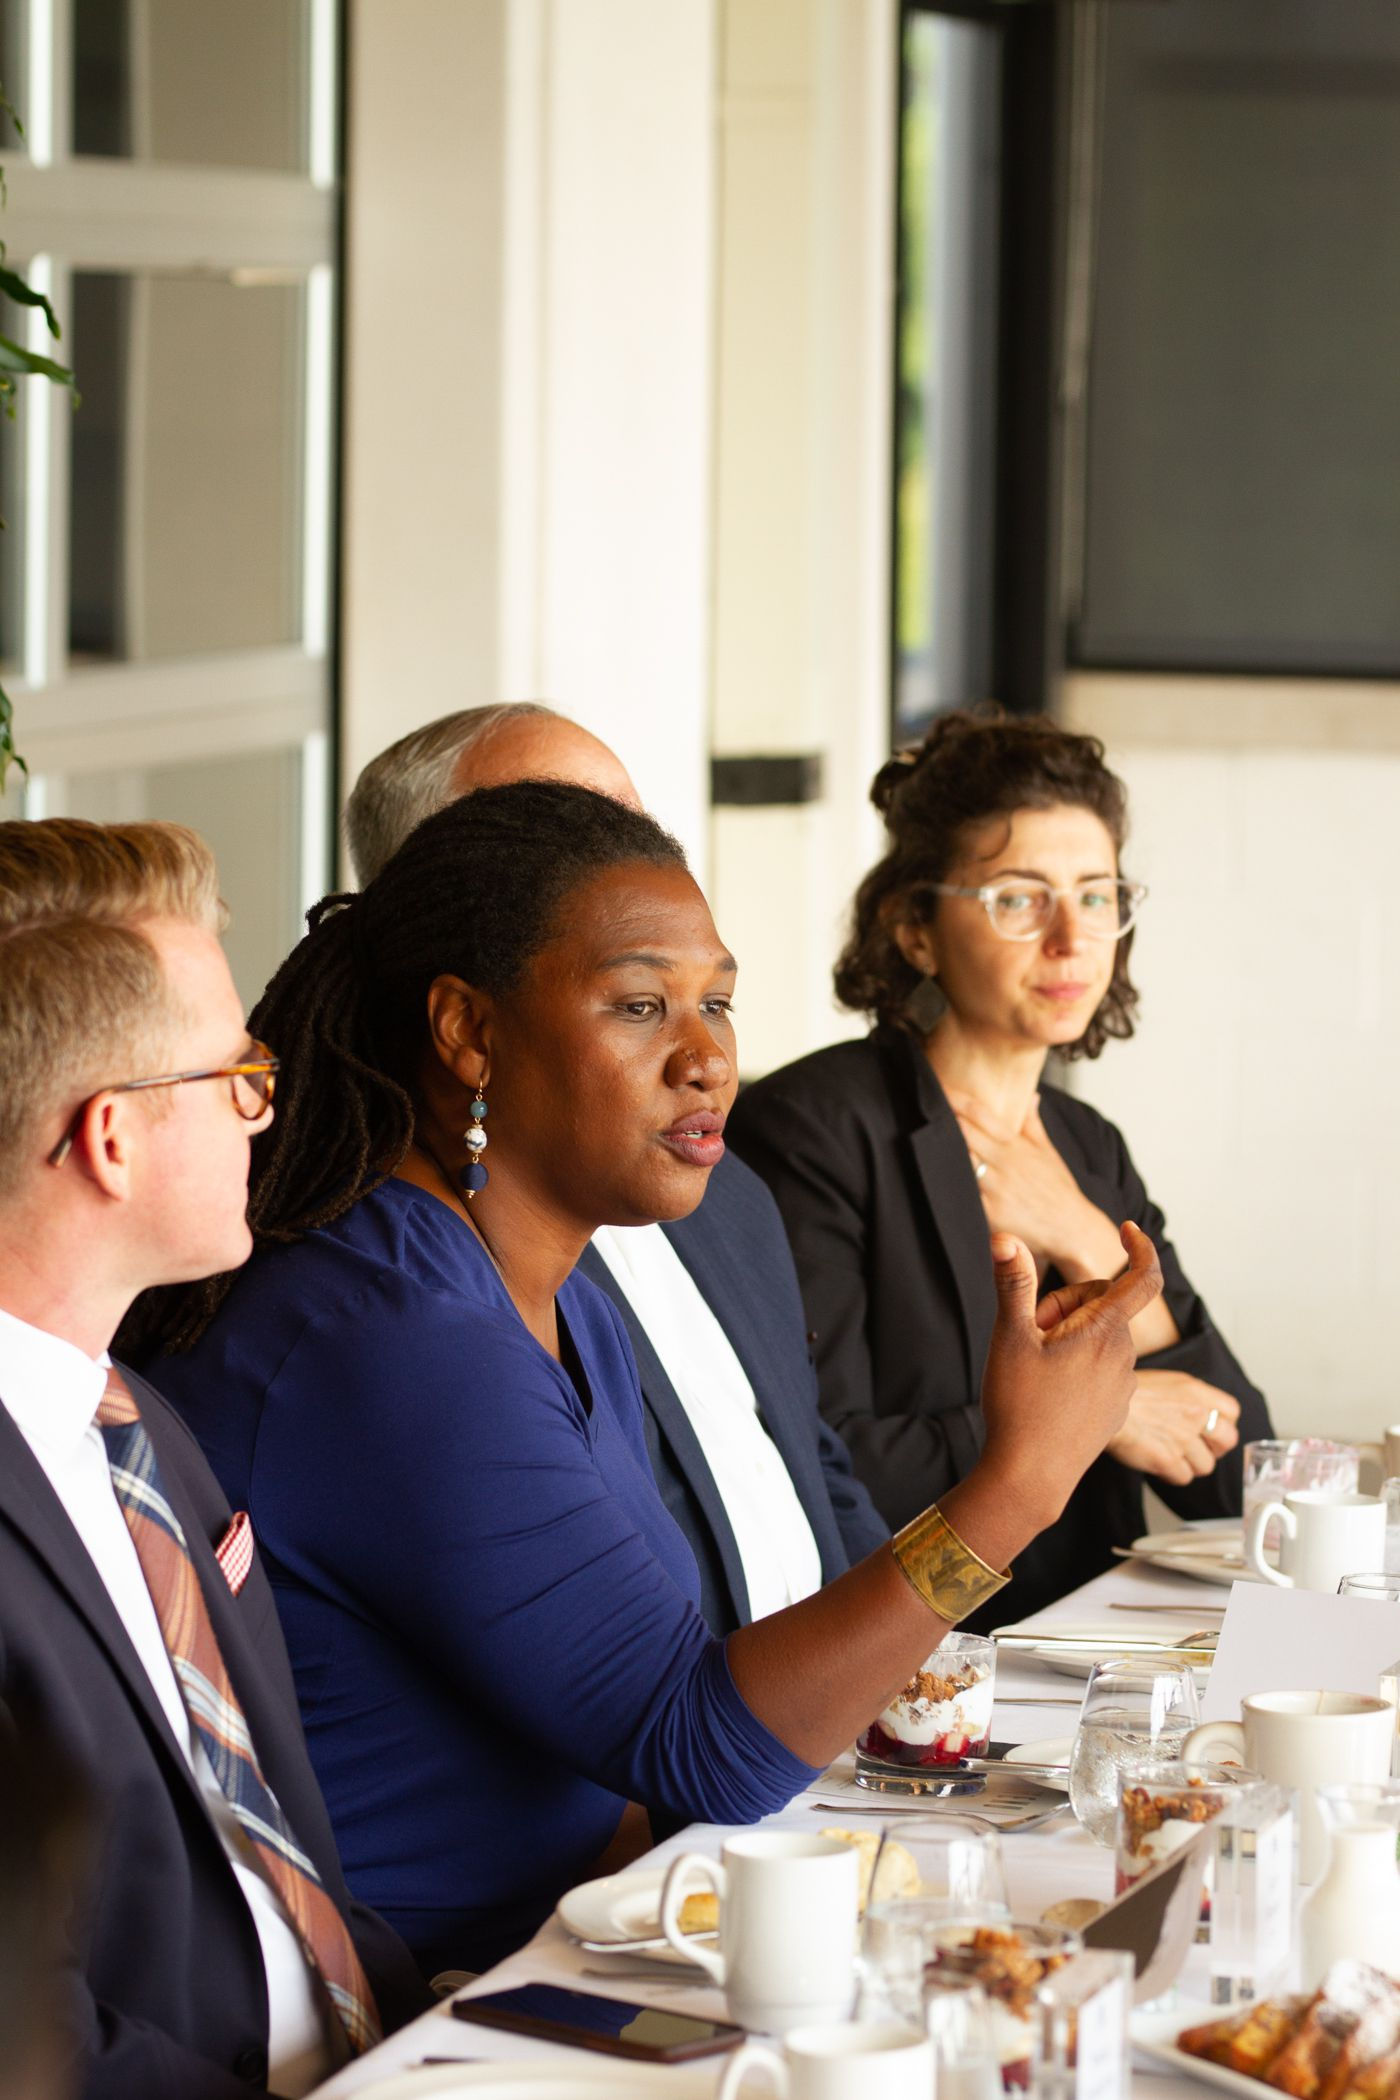 Tene Franklin, Vice President of Diversity Equity and Inclusion for Health Leads at the Axios roundtable.